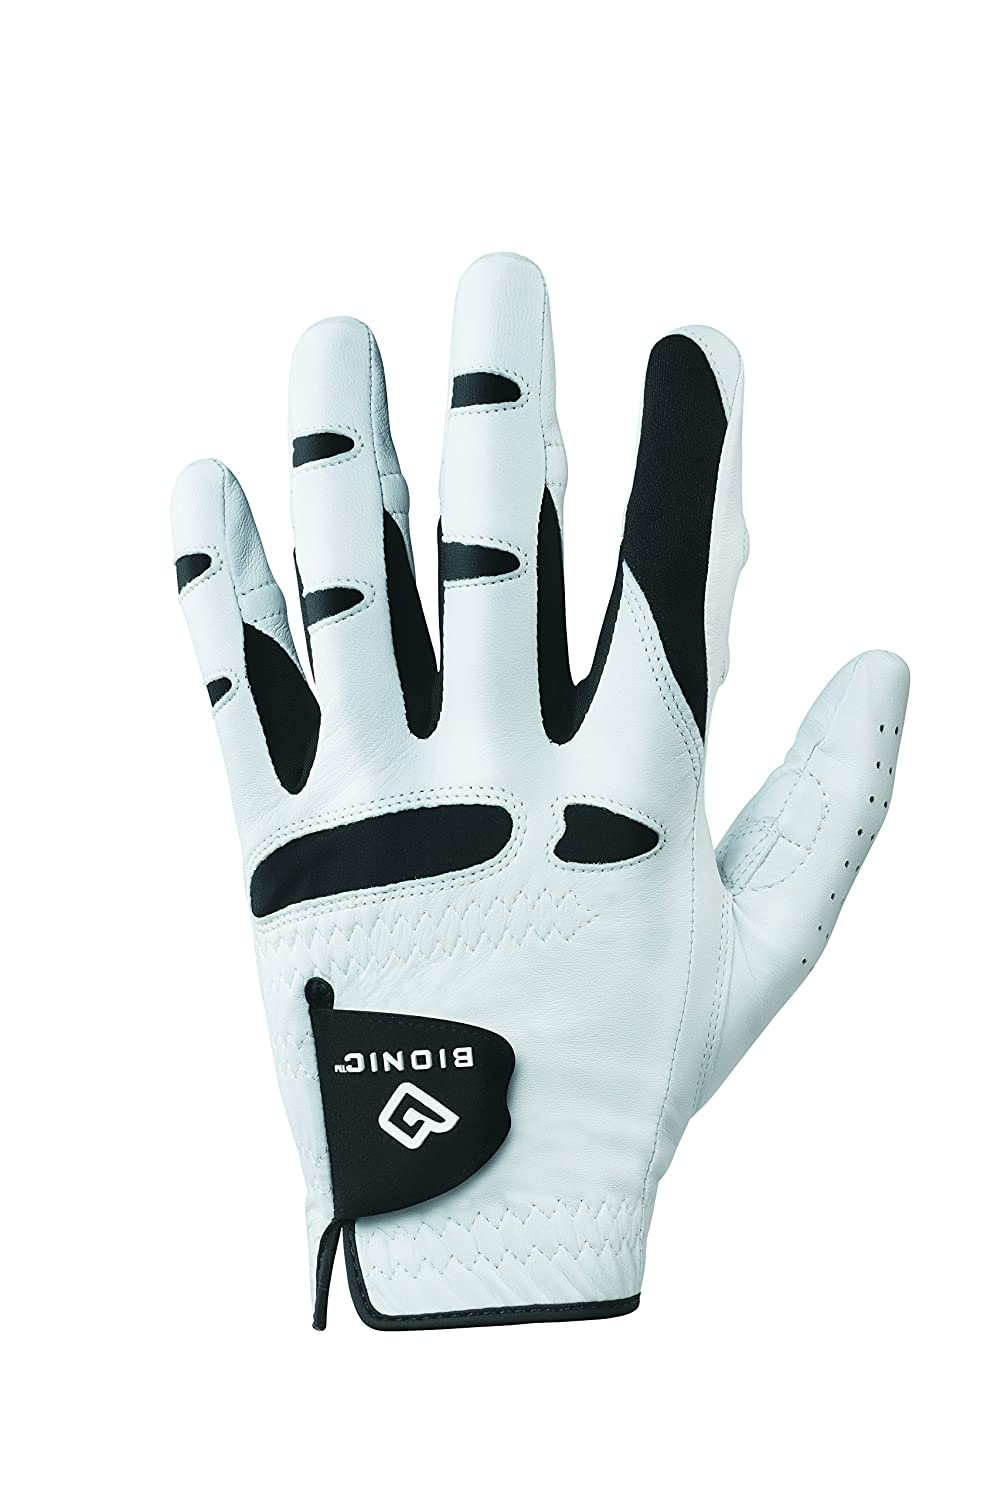 Bionic leather work gloves - Amazon Com Bionic Gloves Men S Stablegrip Golf Glove W Patented Natural Fit Technology Made From Long Lasting Durable Genuine Cabretta Leather